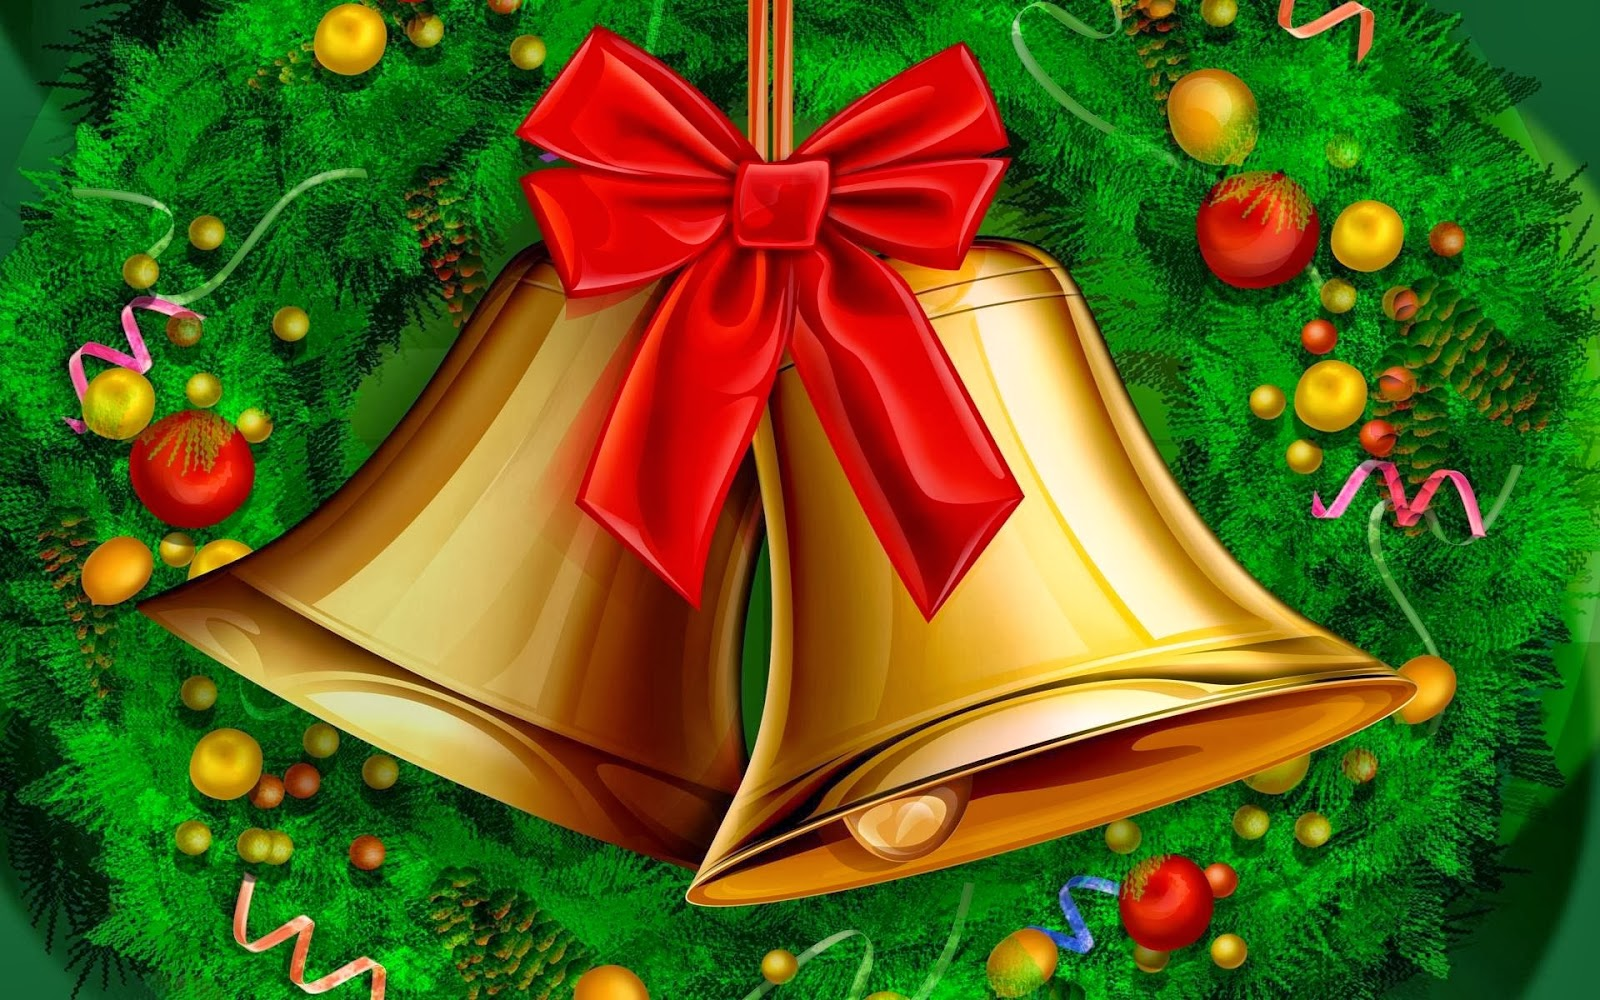 Merry christmas different hd wallpaper collections